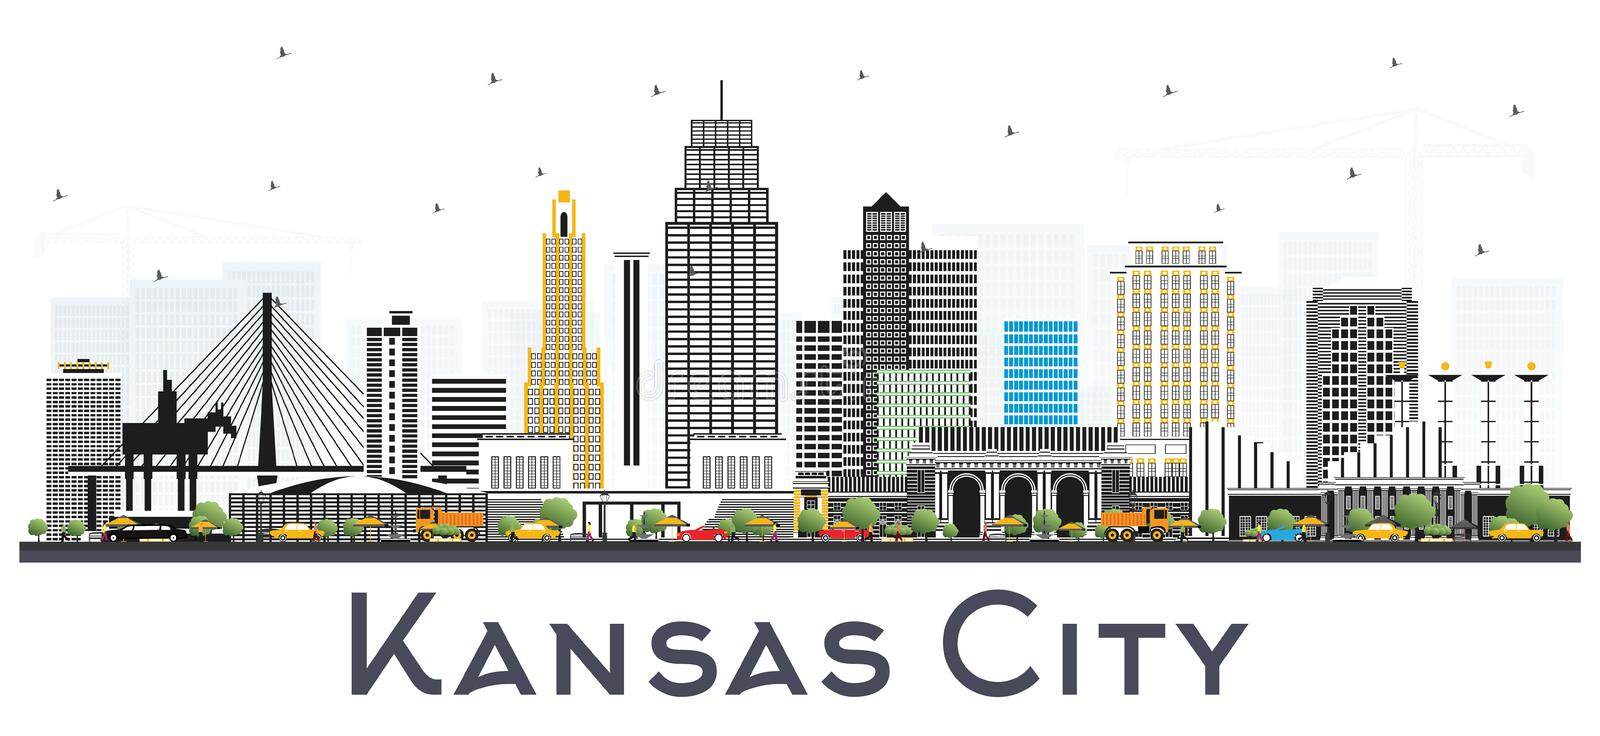 Kansas City Missouri Skyline with Color Buildings Isolated on White. Vector Illustration. Business Travel and Tourism Concept with Modern Architecture. Kansas stock illustration